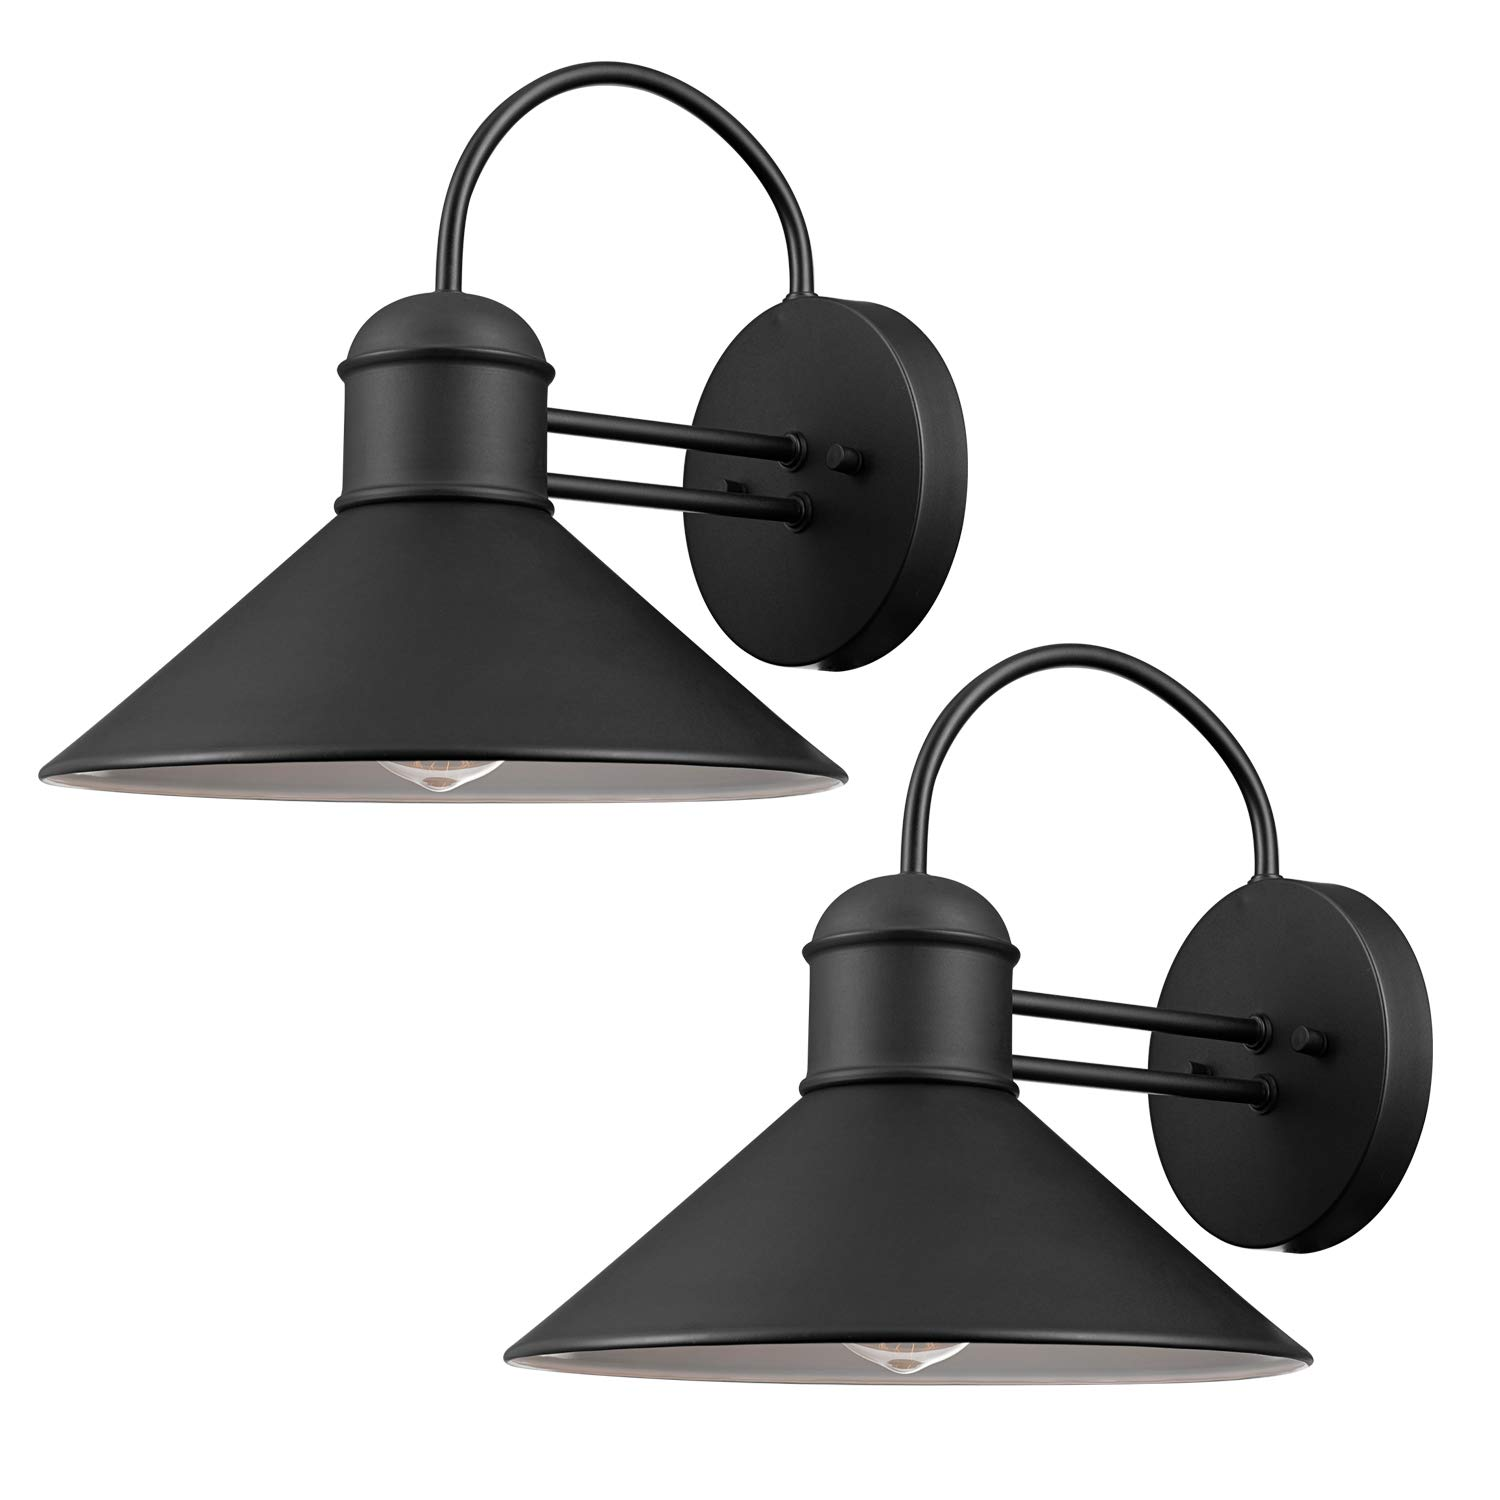 Globe Electric 44165 Sebastien Outdoor Wall Sconce, Black Finish, 2-Pack